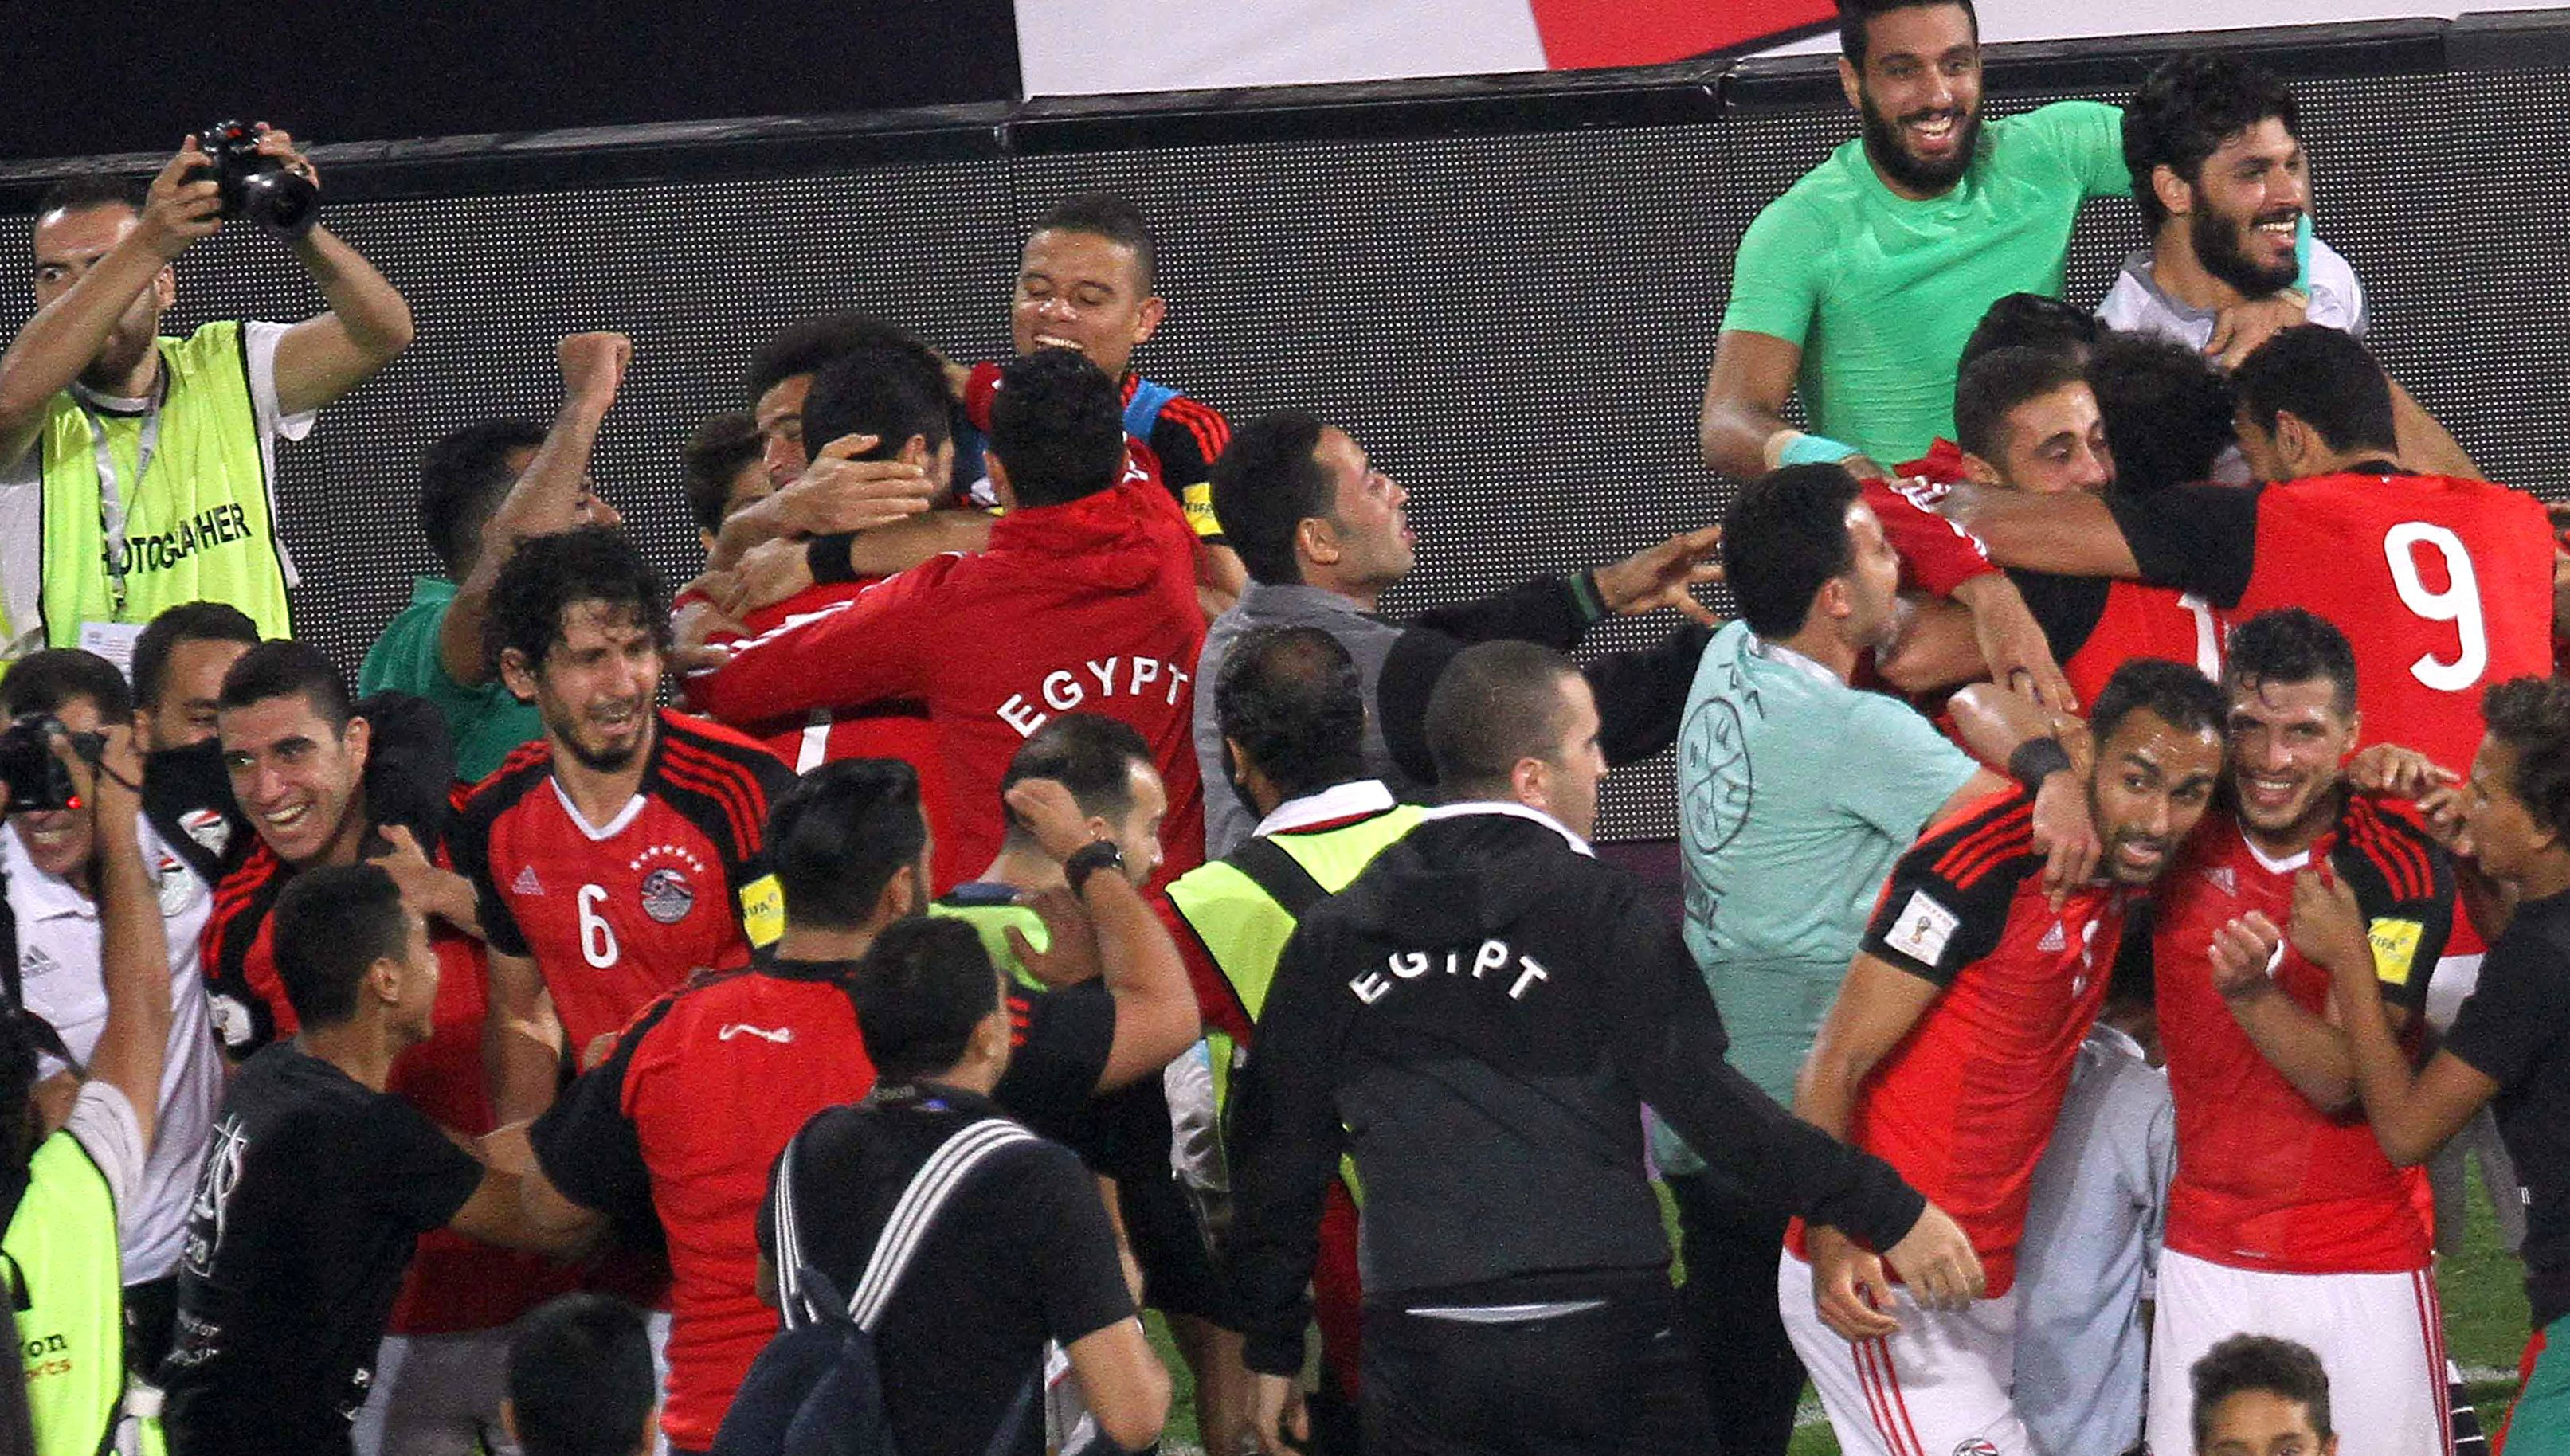 Egypt players celebrate after victory over the Congo